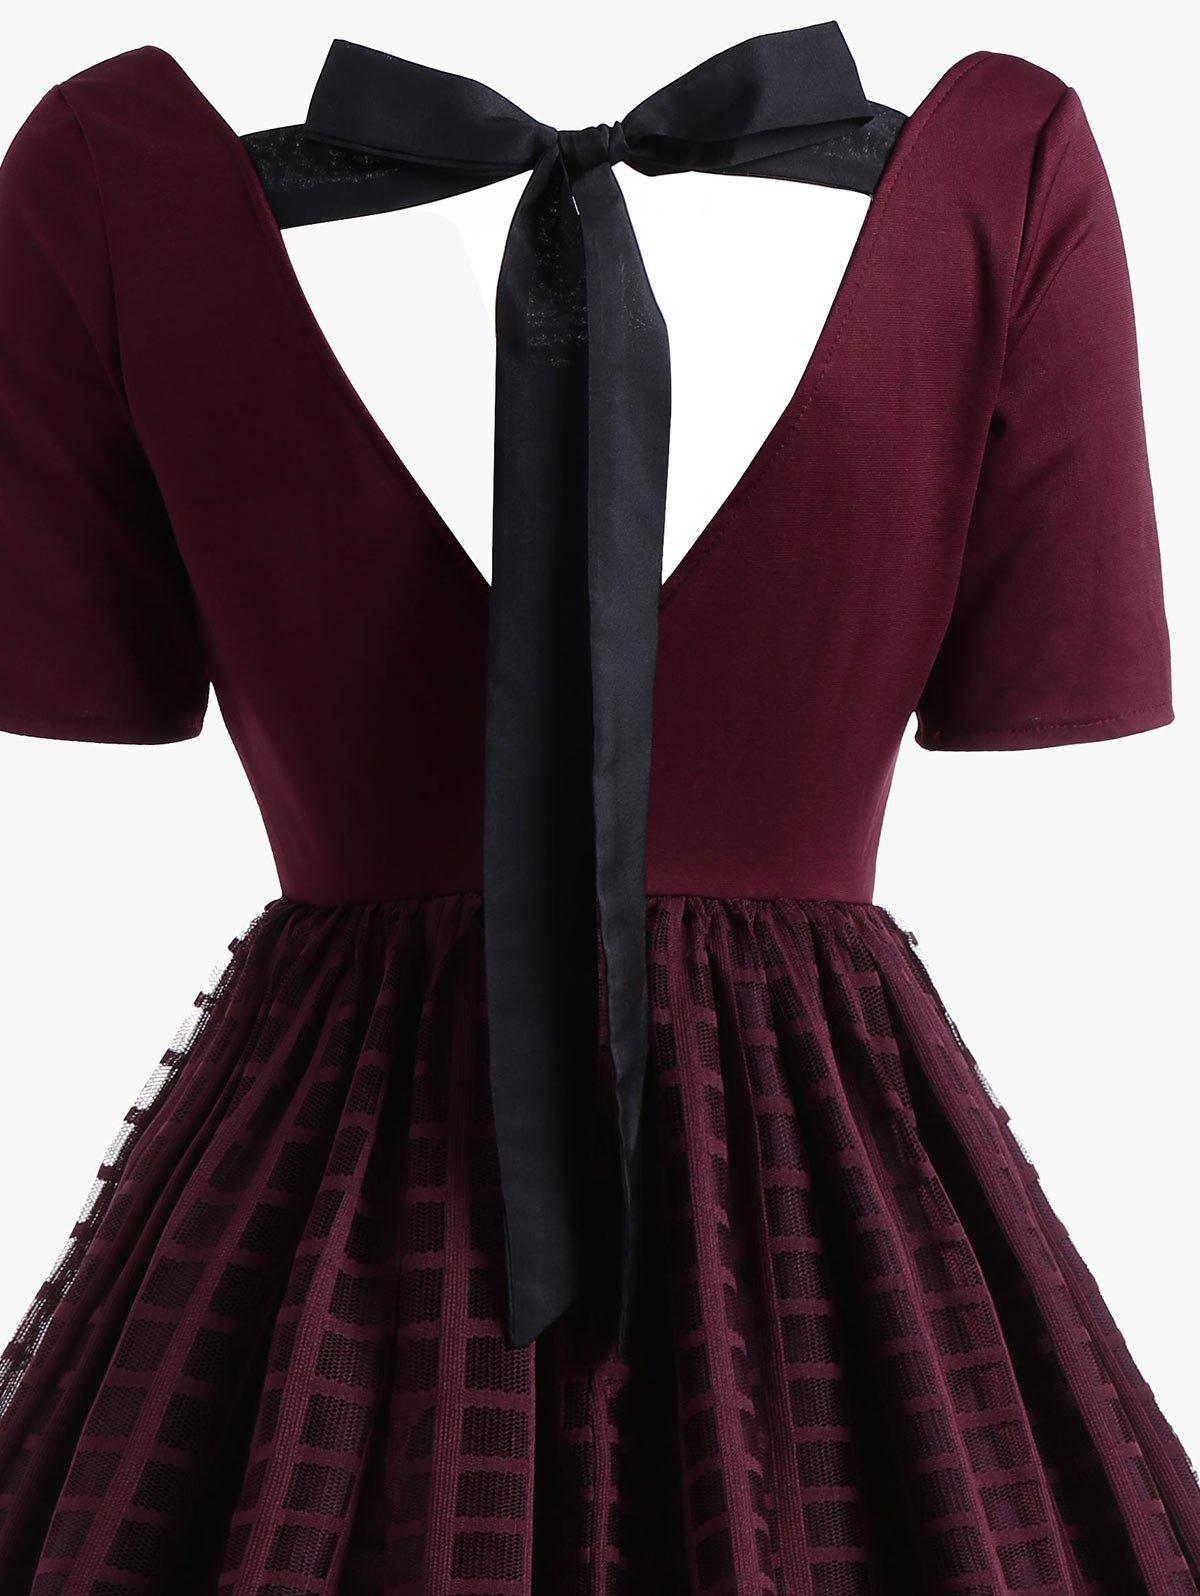 Bowknot Floral Plaid Lace Vintage Dress - WINE RED 2XL